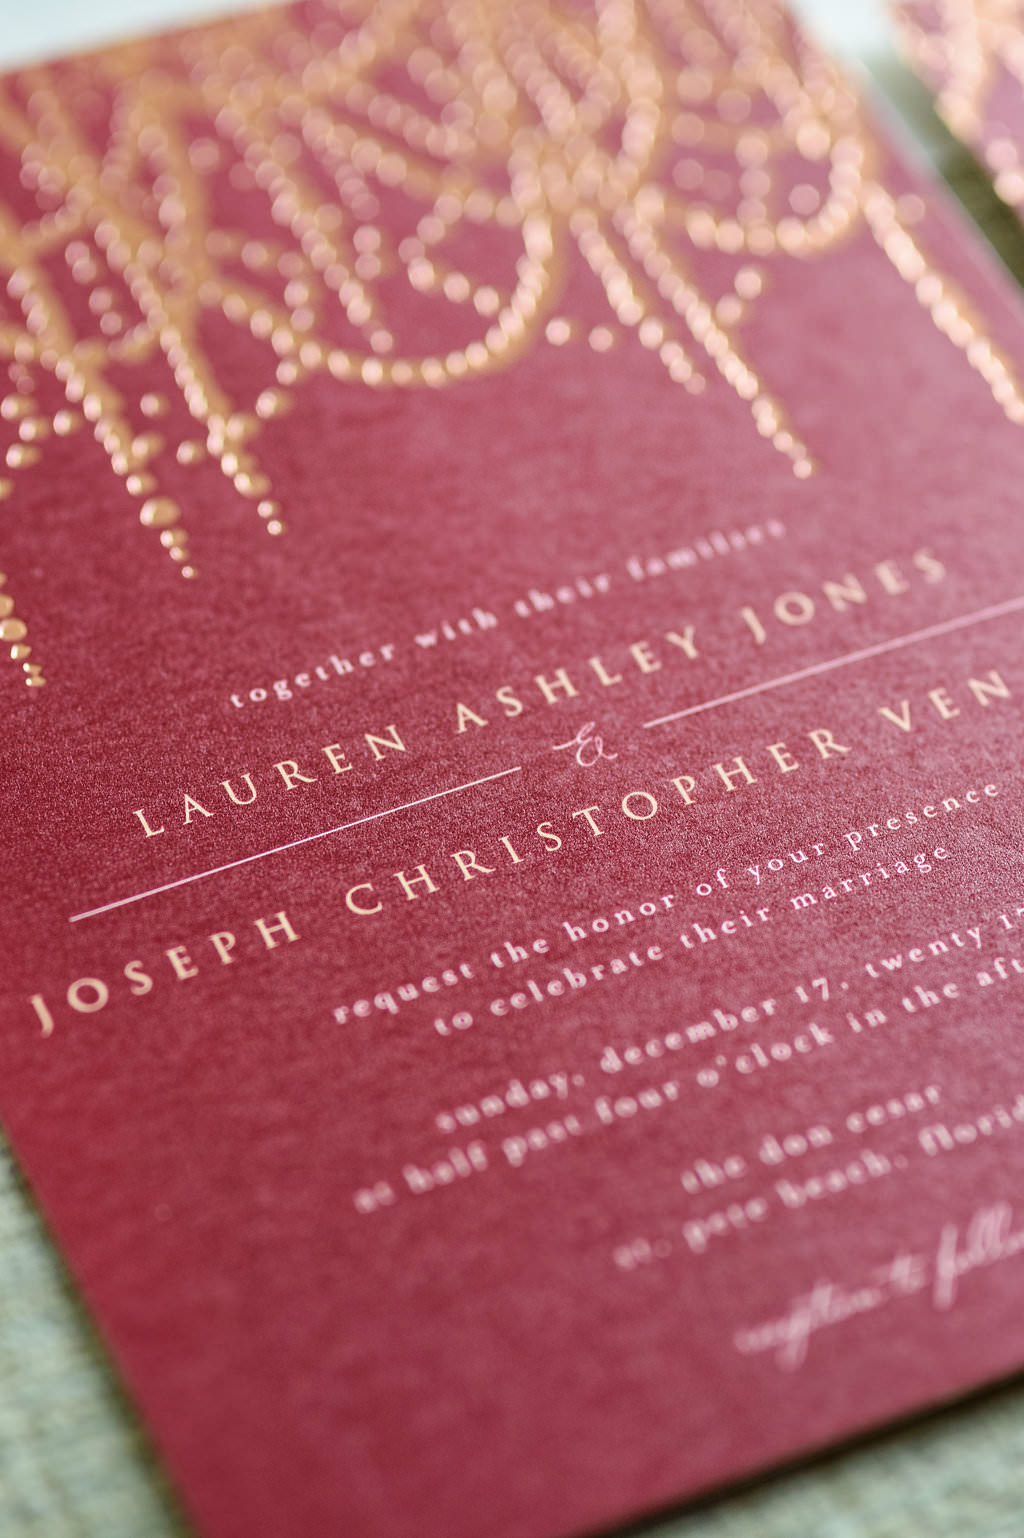 Modern Romantic Gold Printed on Red Paper Wedding Invitation with Foil Chandelier Design